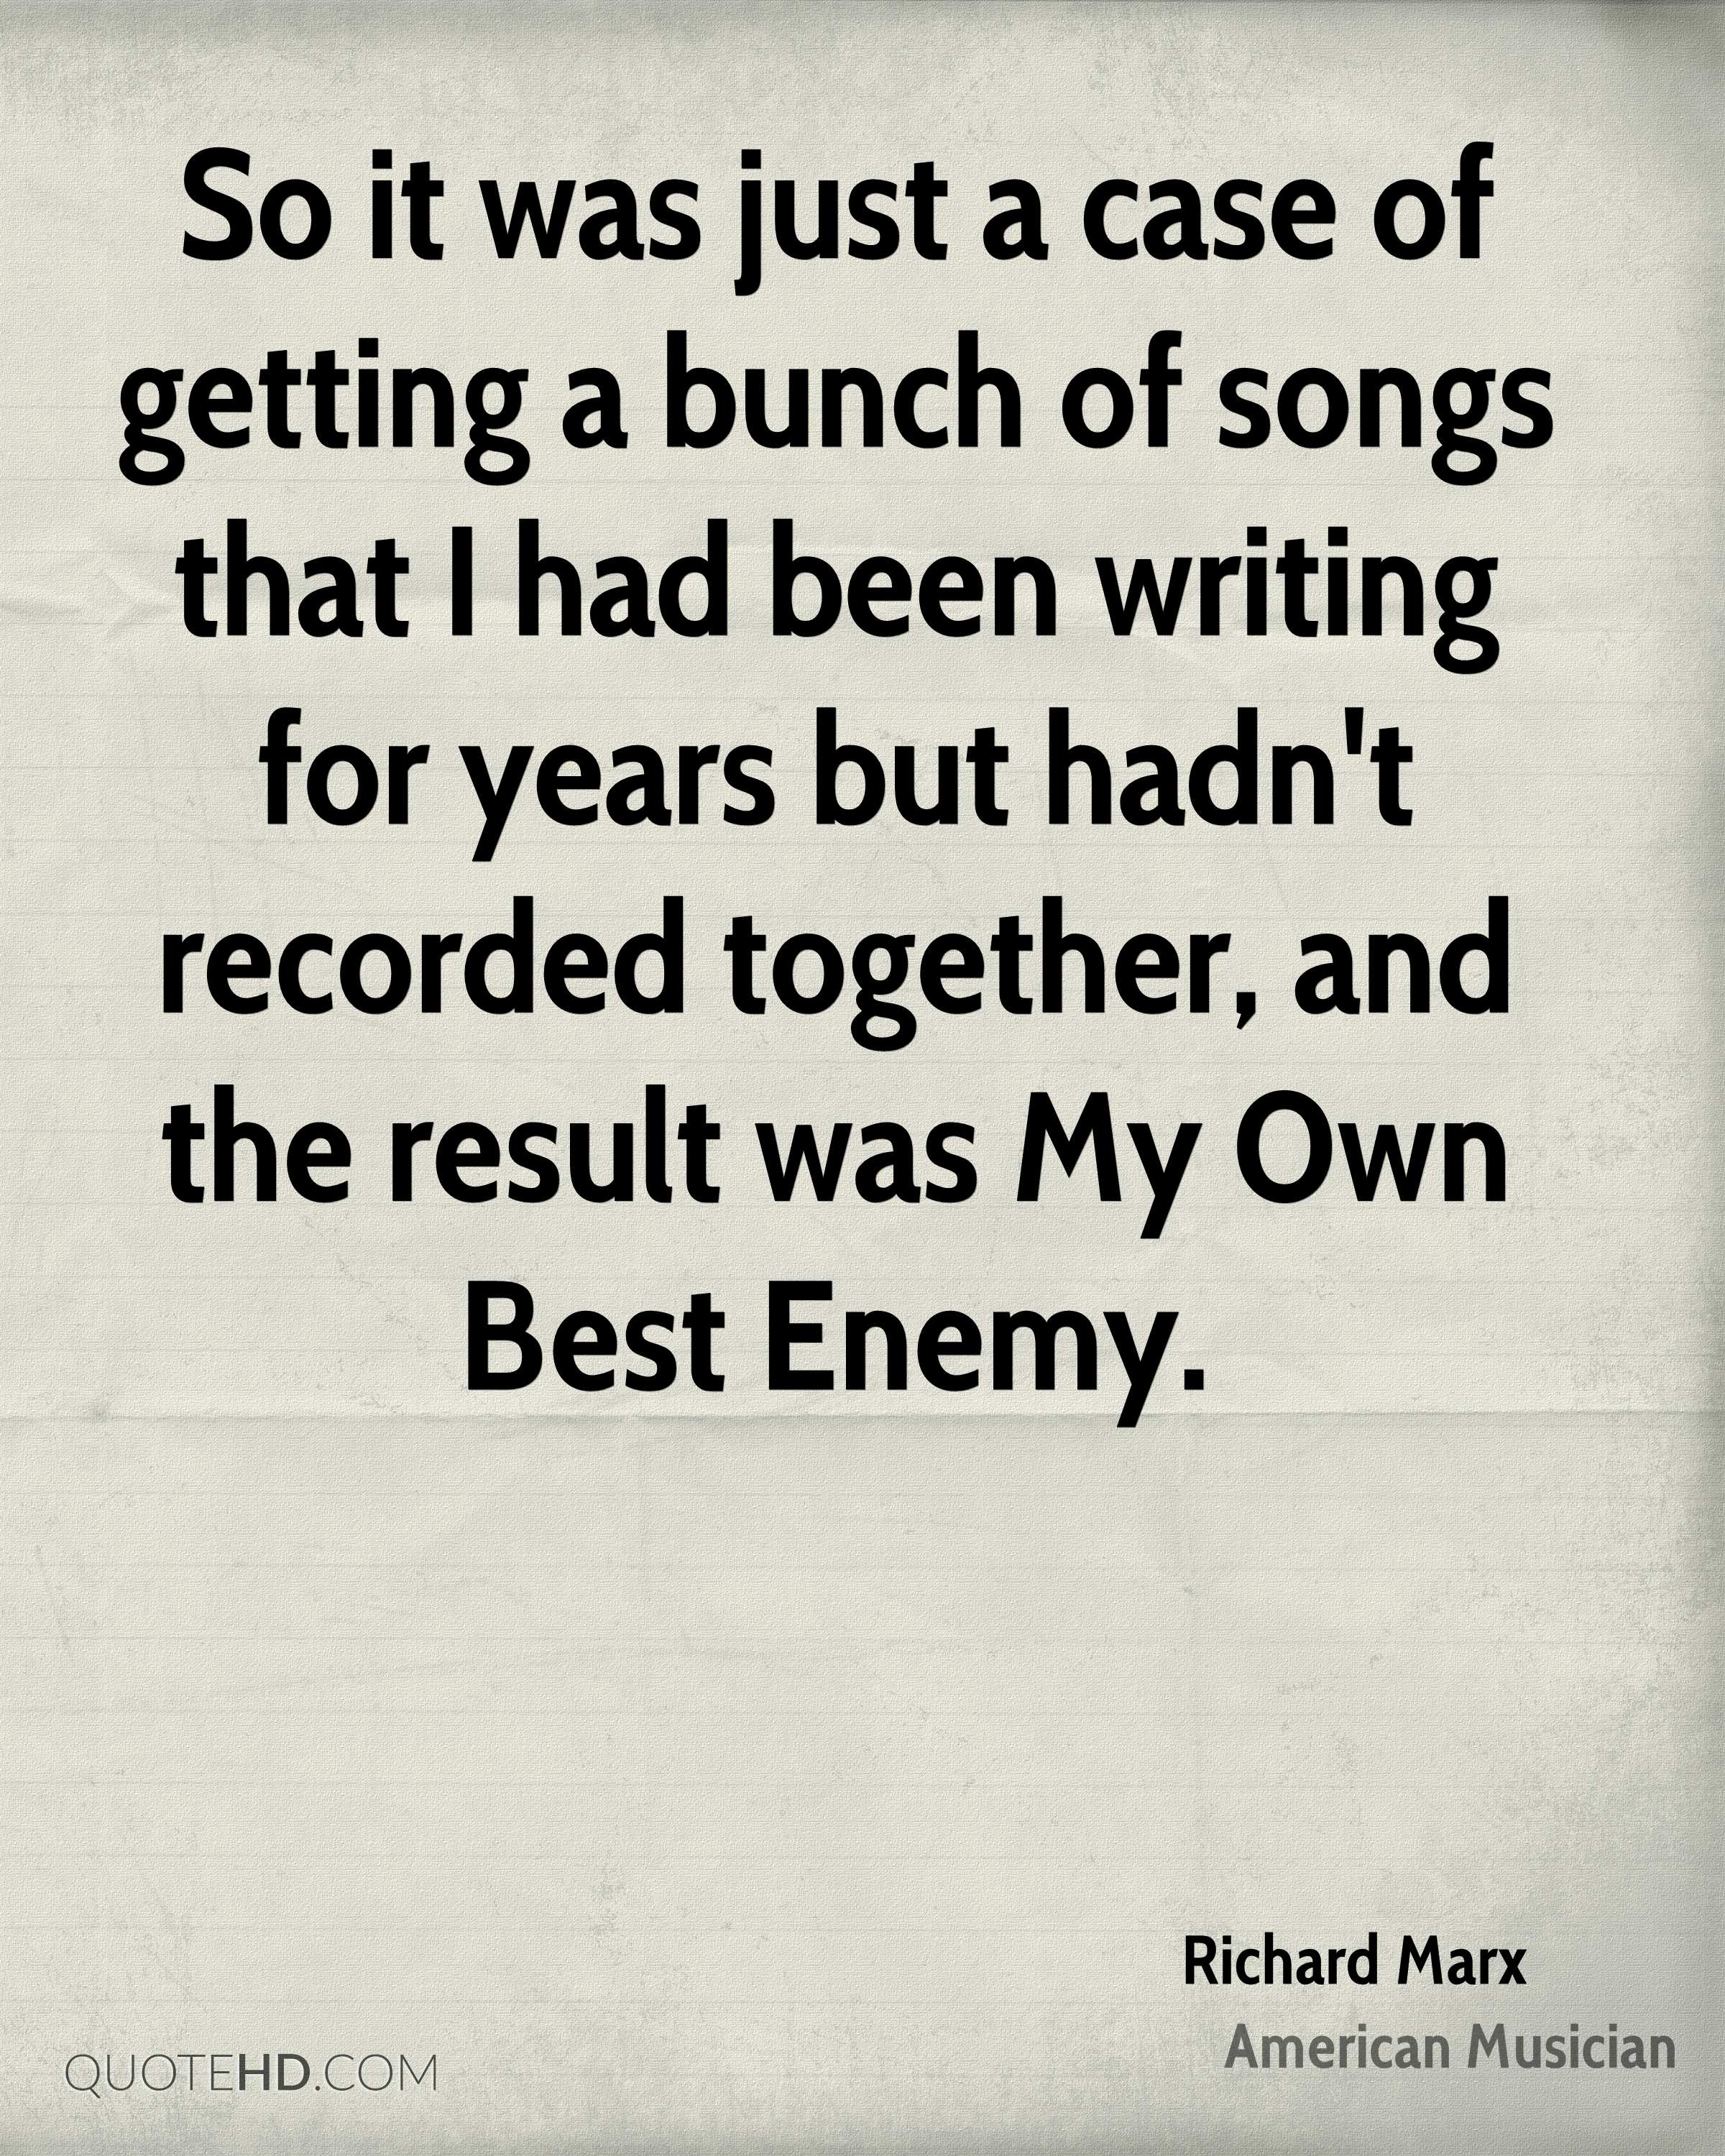 So it was just a case of getting a bunch of songs that I had been writing for years but hadn't recorded together, and the result was My Own Best Enemy.